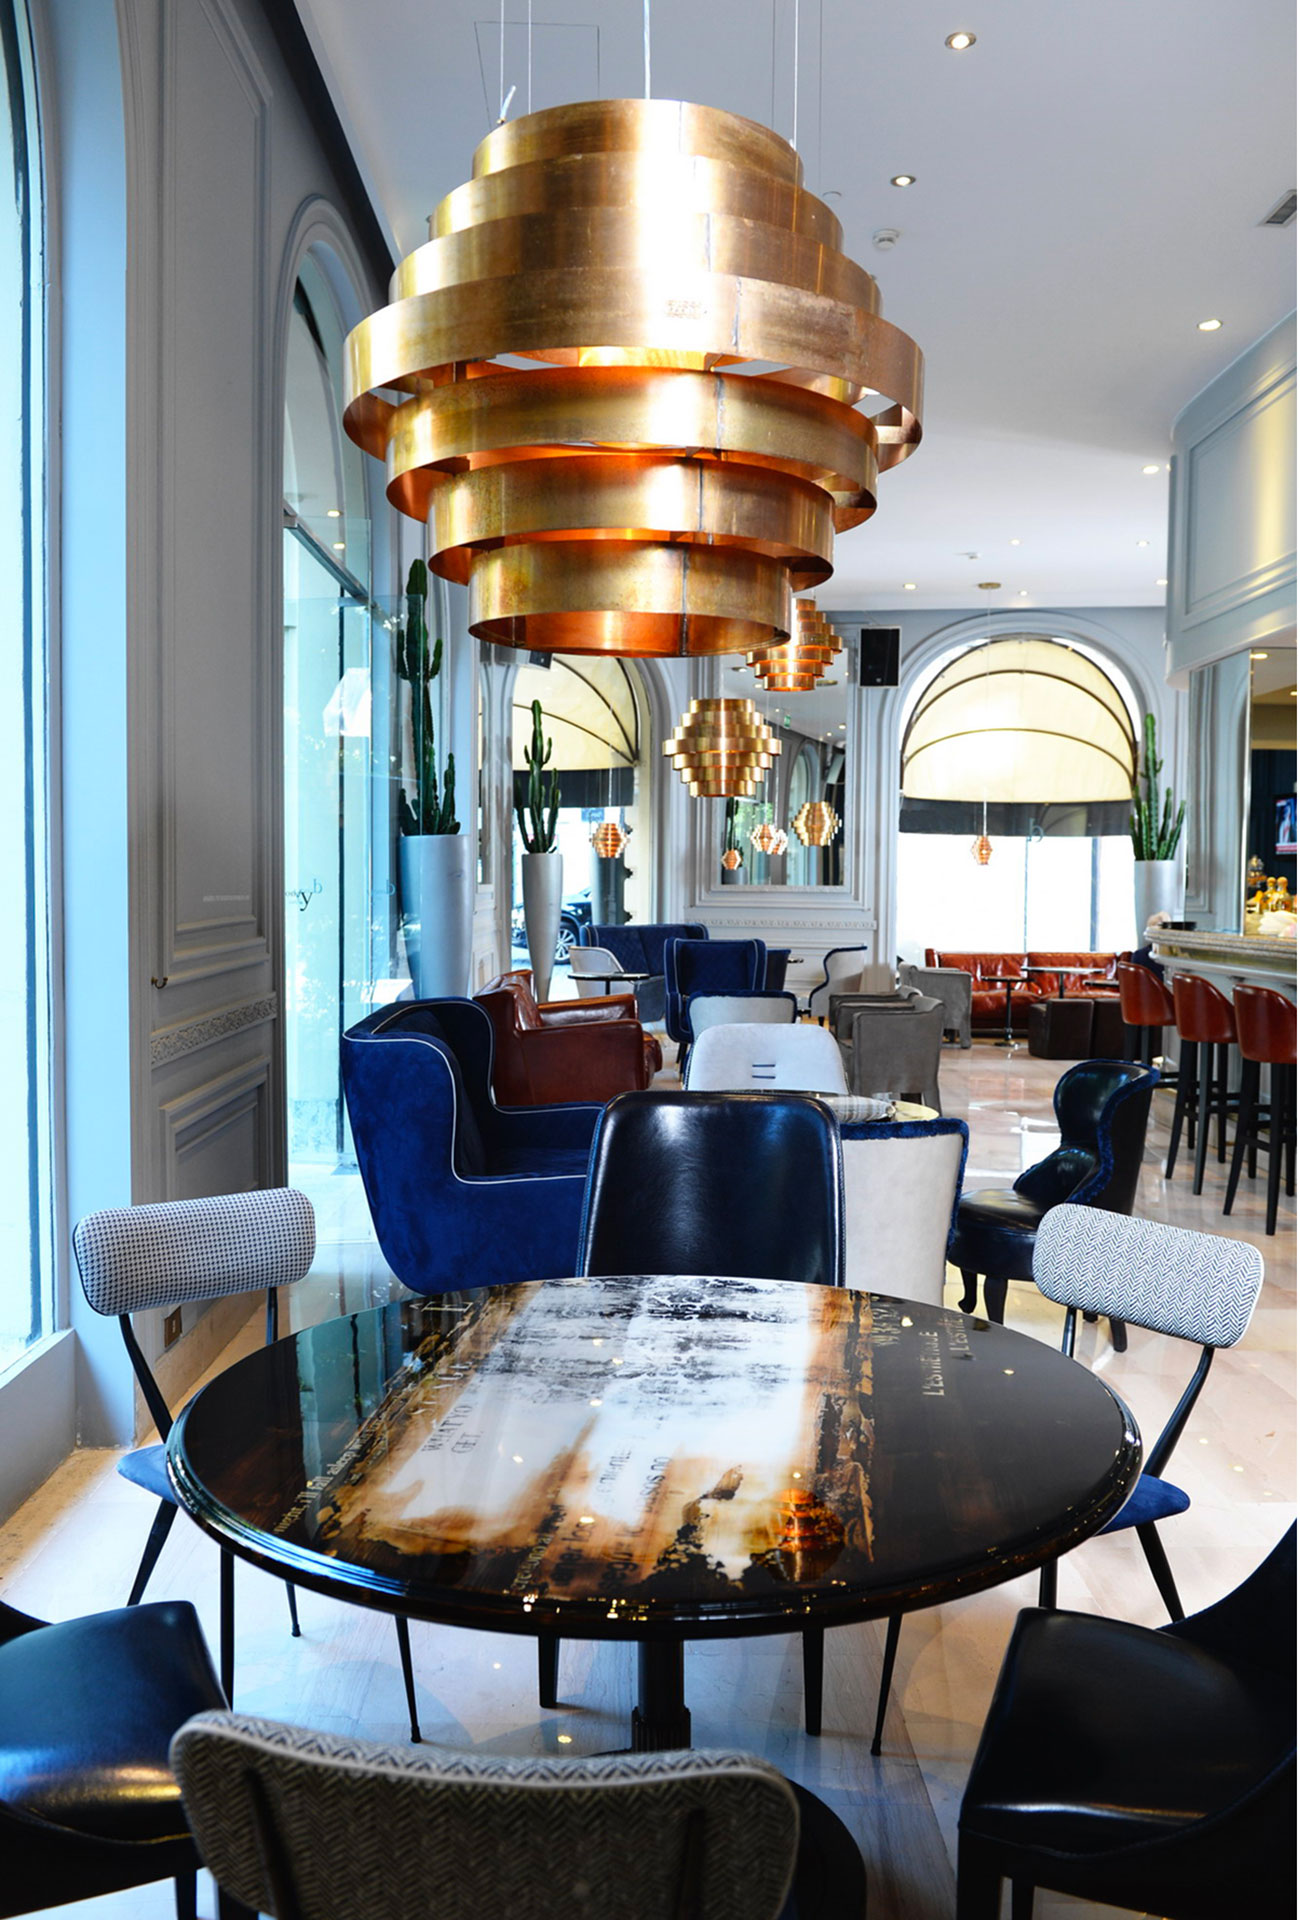 WESTIN EXCELSIOR CAFE' DONEY | ROMA